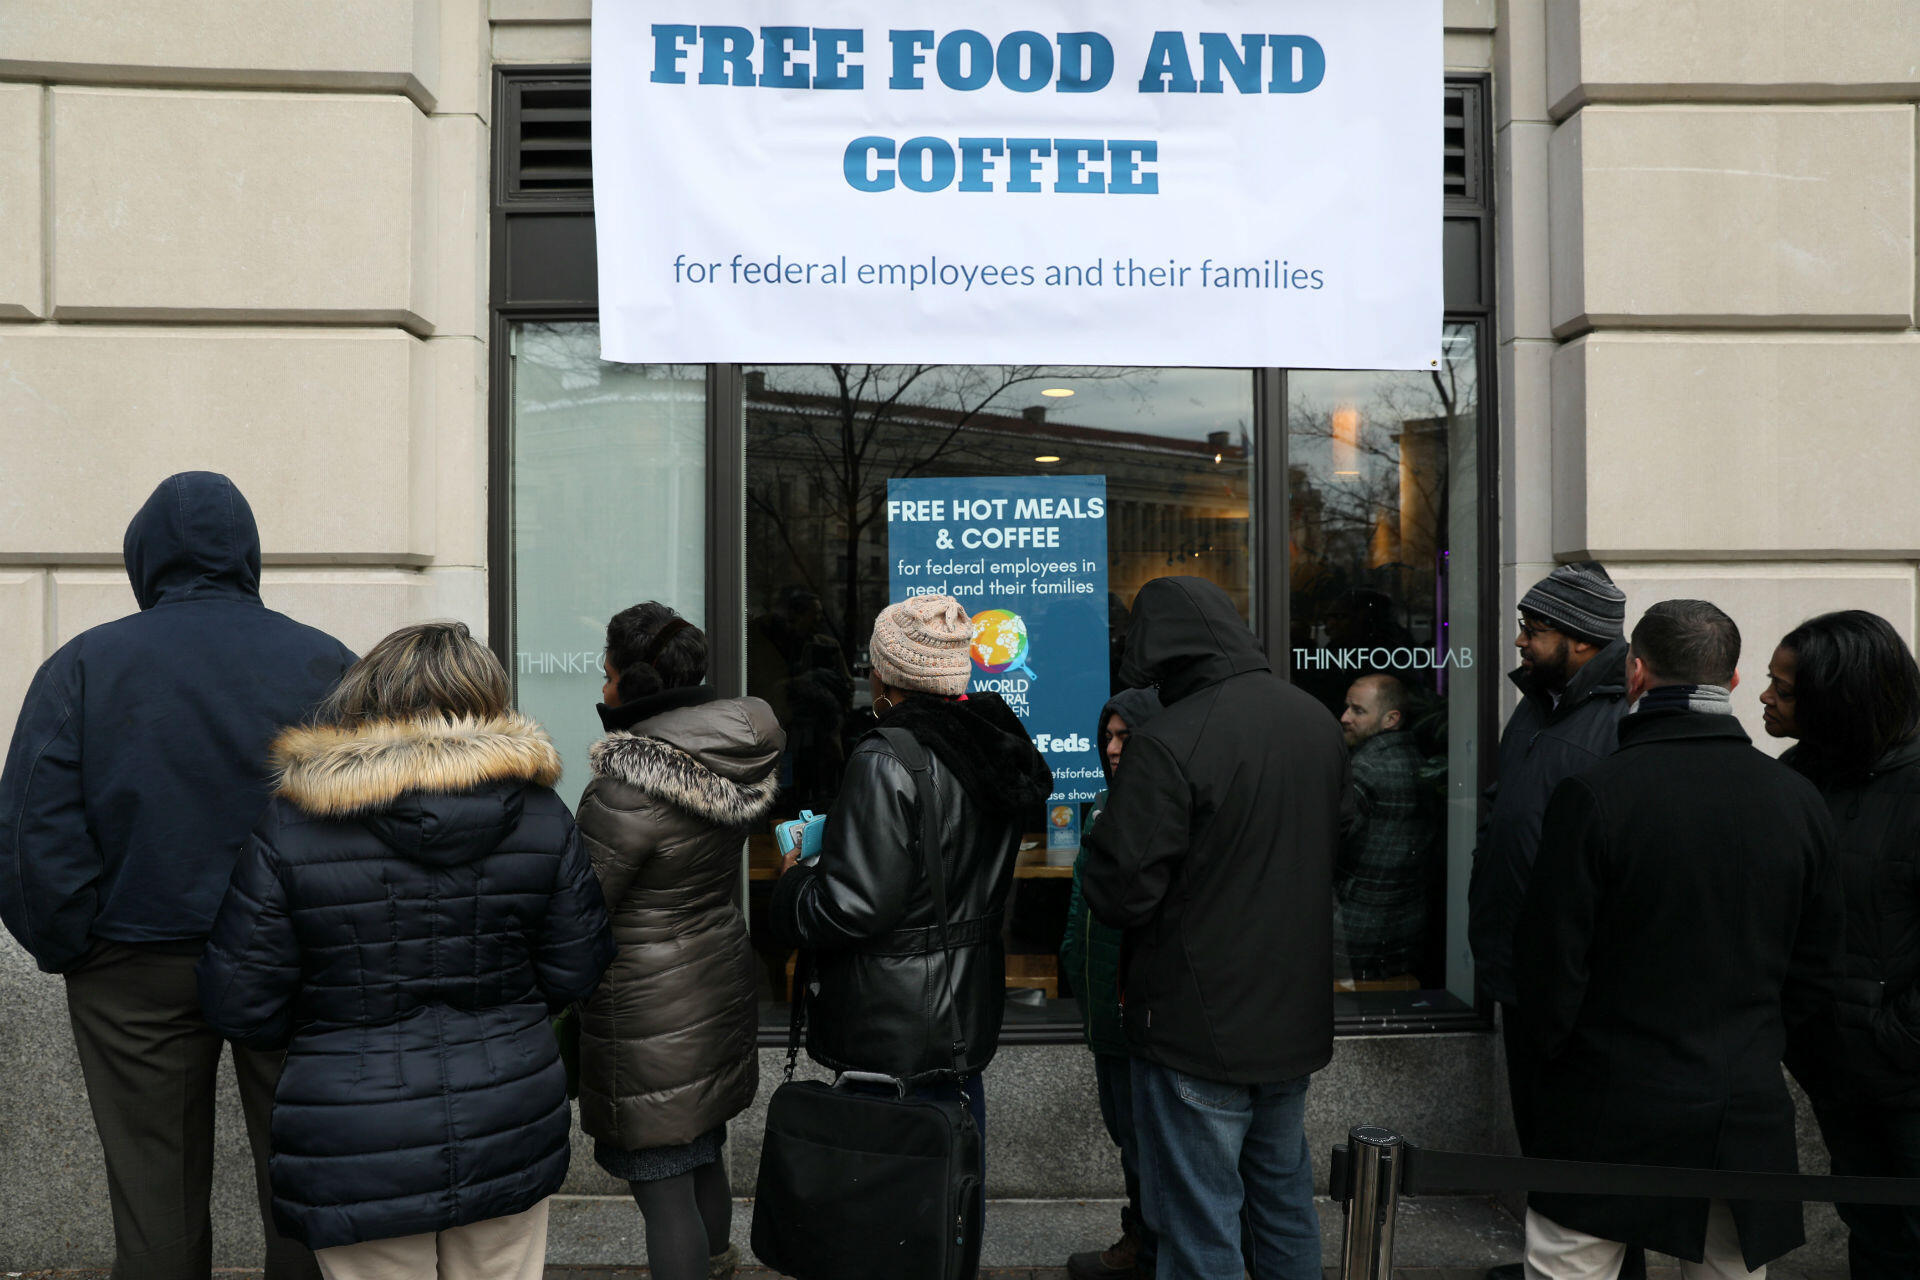 Federal workers left unpaid or furloughed by the extended partial government shutdown stand in line for fresh food and coffee at the World Central Kitchen, a volunteer emergency kitchen run by Chef Jose Andres, in Washington, DC, on January 16, 2019. Hotels, bars and restaurants have stepped in to offer rooms, meals and snacks, free or at a discount, to shutdown-affected workers. Food banks, too, have opened their doors as the stalemate continues.